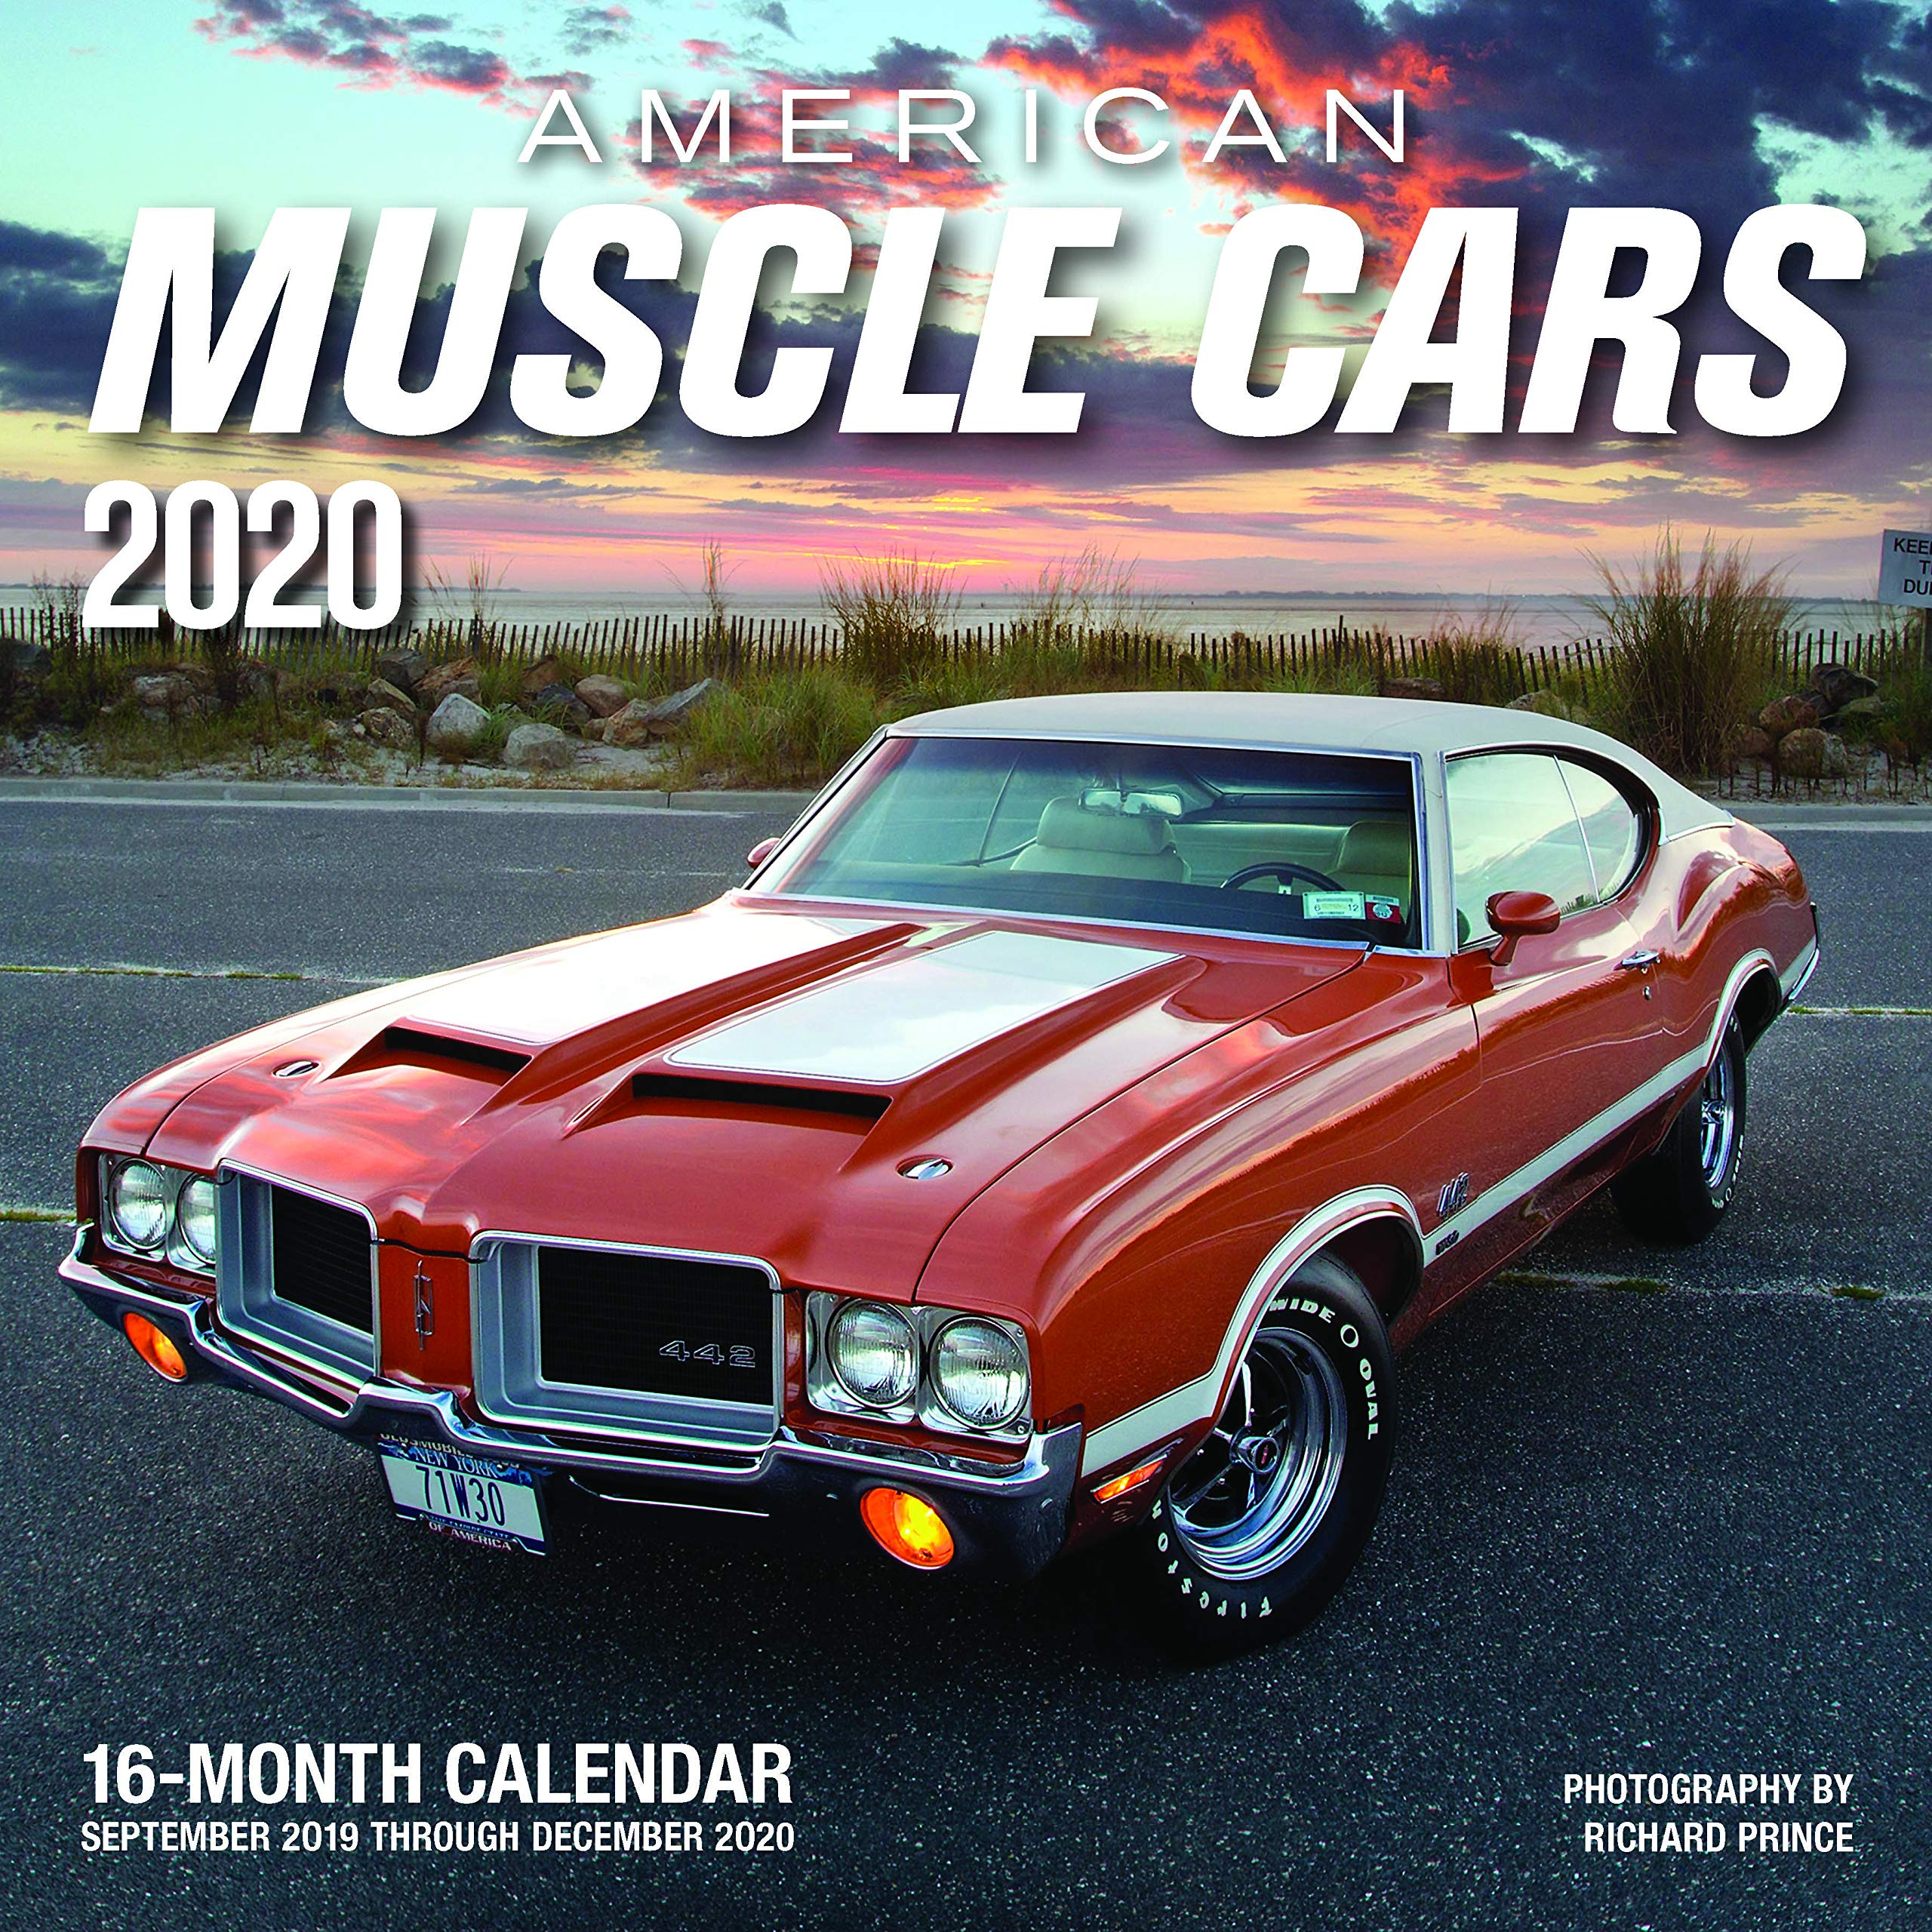 American Muscle Cars 2020 16 Month Calendar Includes September 2019